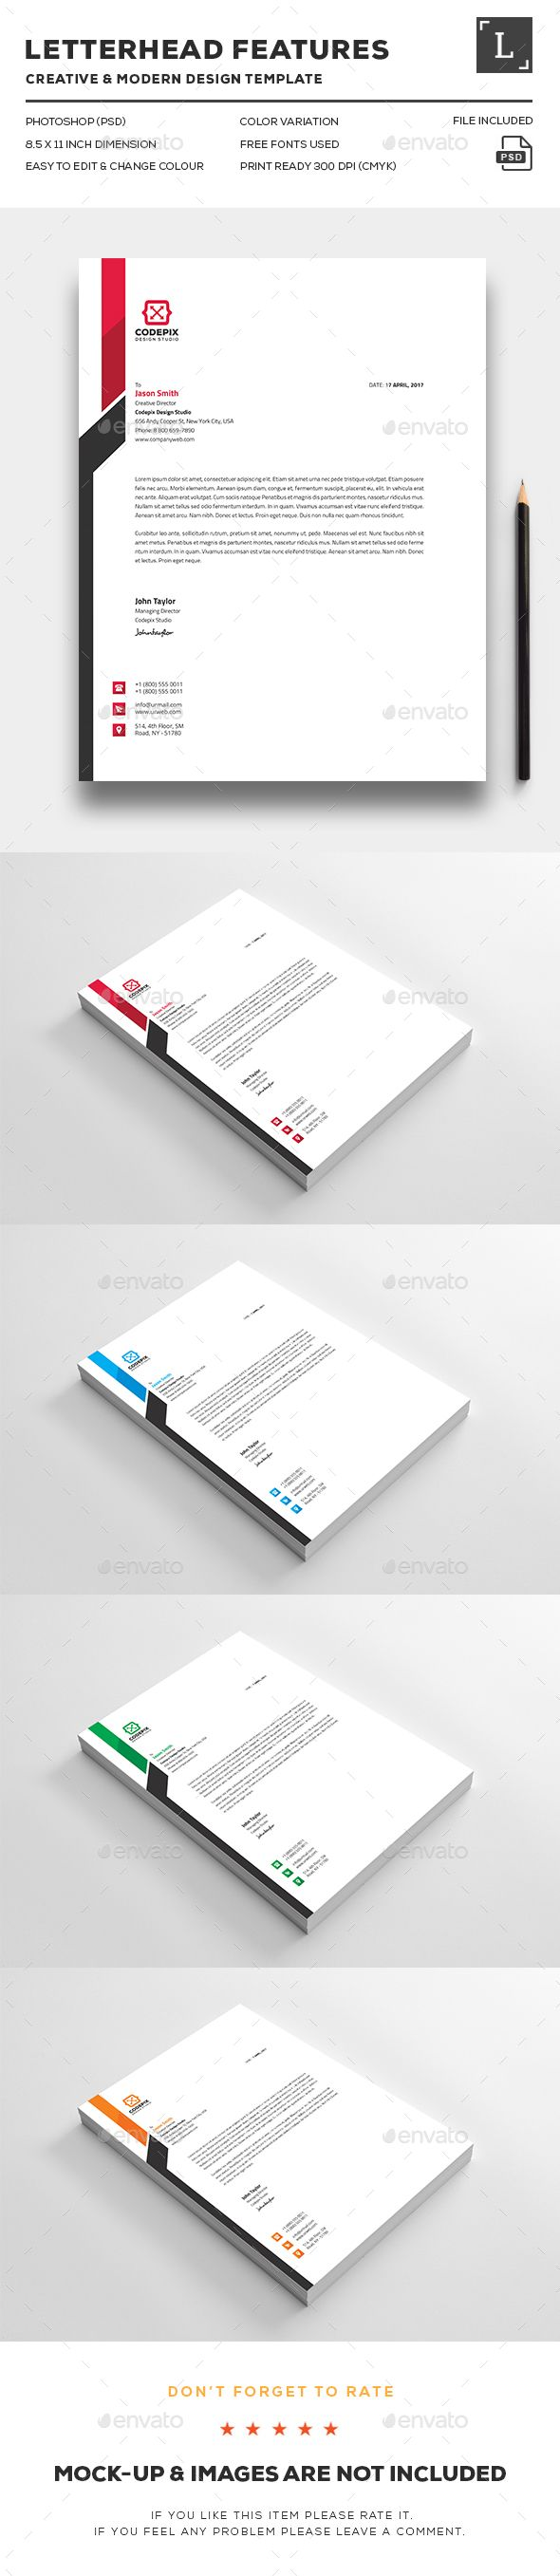 Letterhead Design Template - Stationery Print Template PSD. Download here: http://graphicriver.net/item/letterheads/16412085?s_rank=66&ref=yinkira